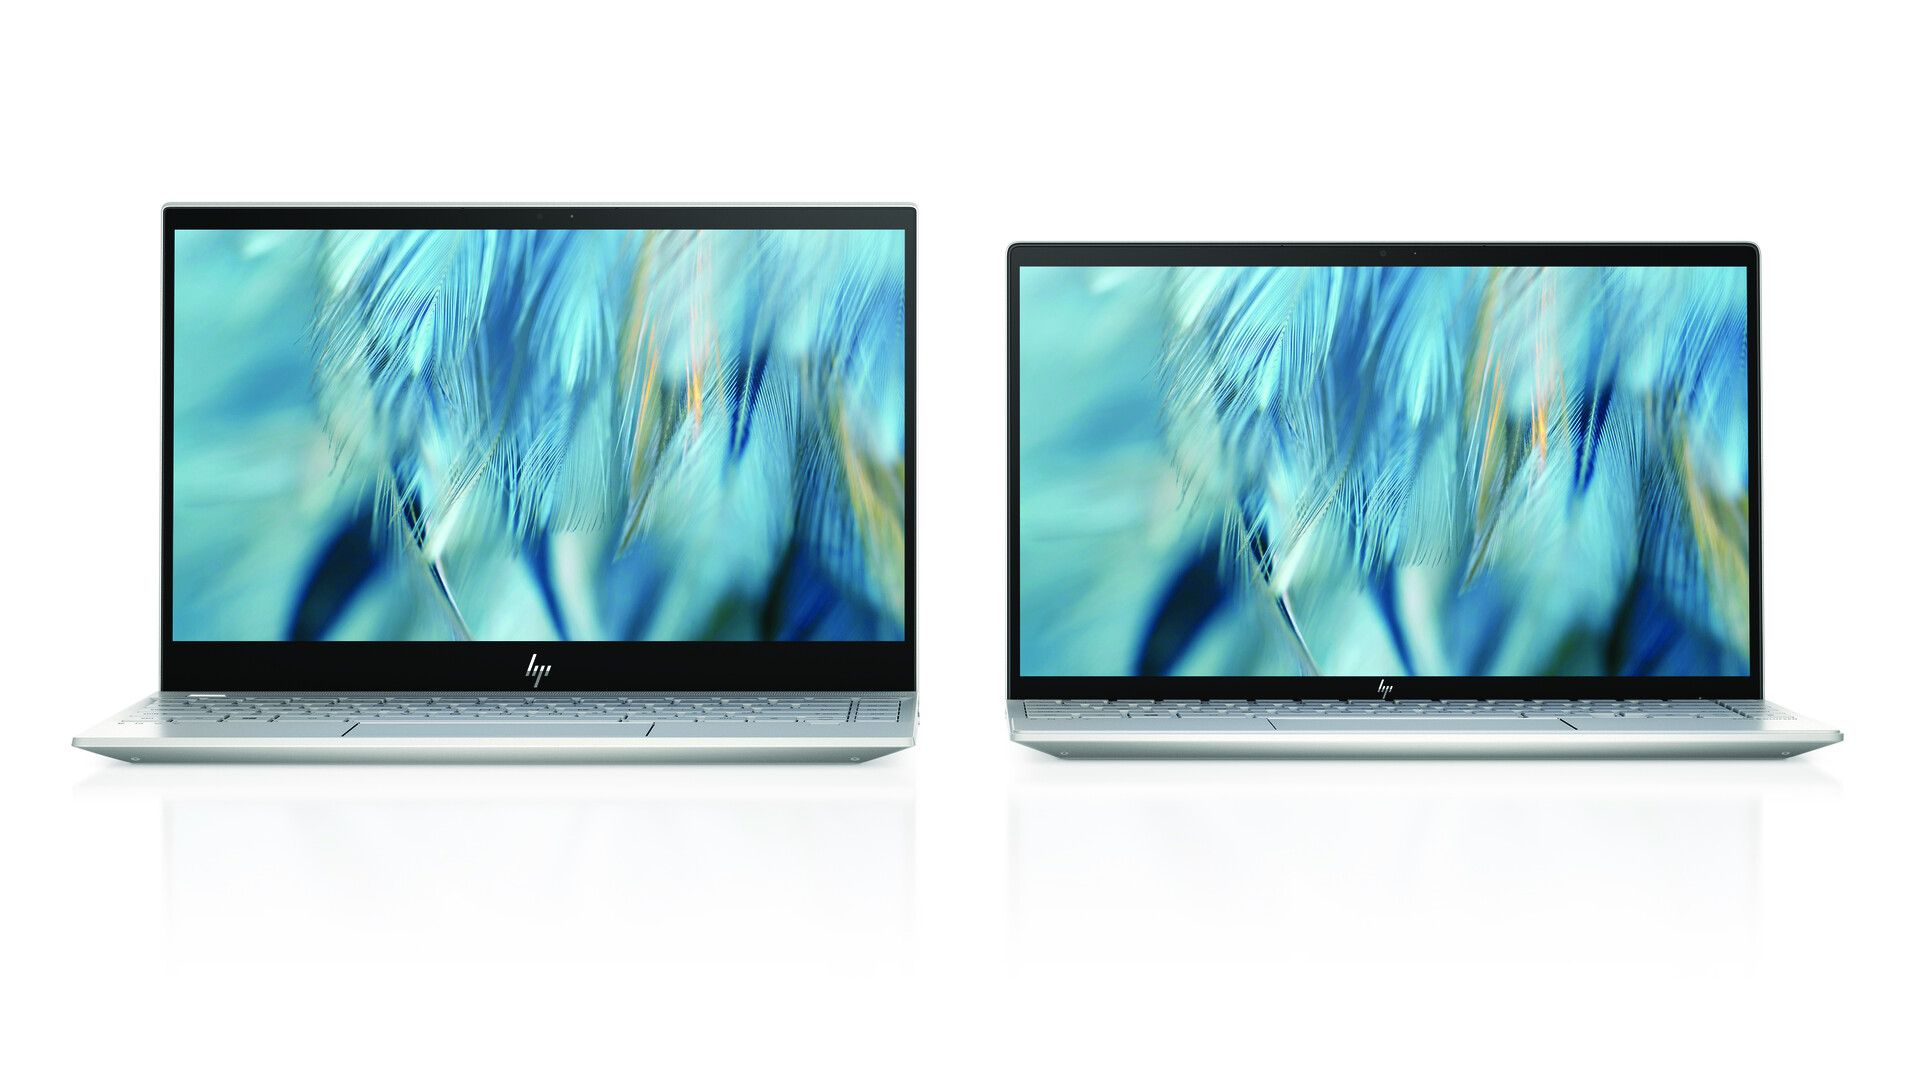 Difference Between HP Pavilion vs HP envy